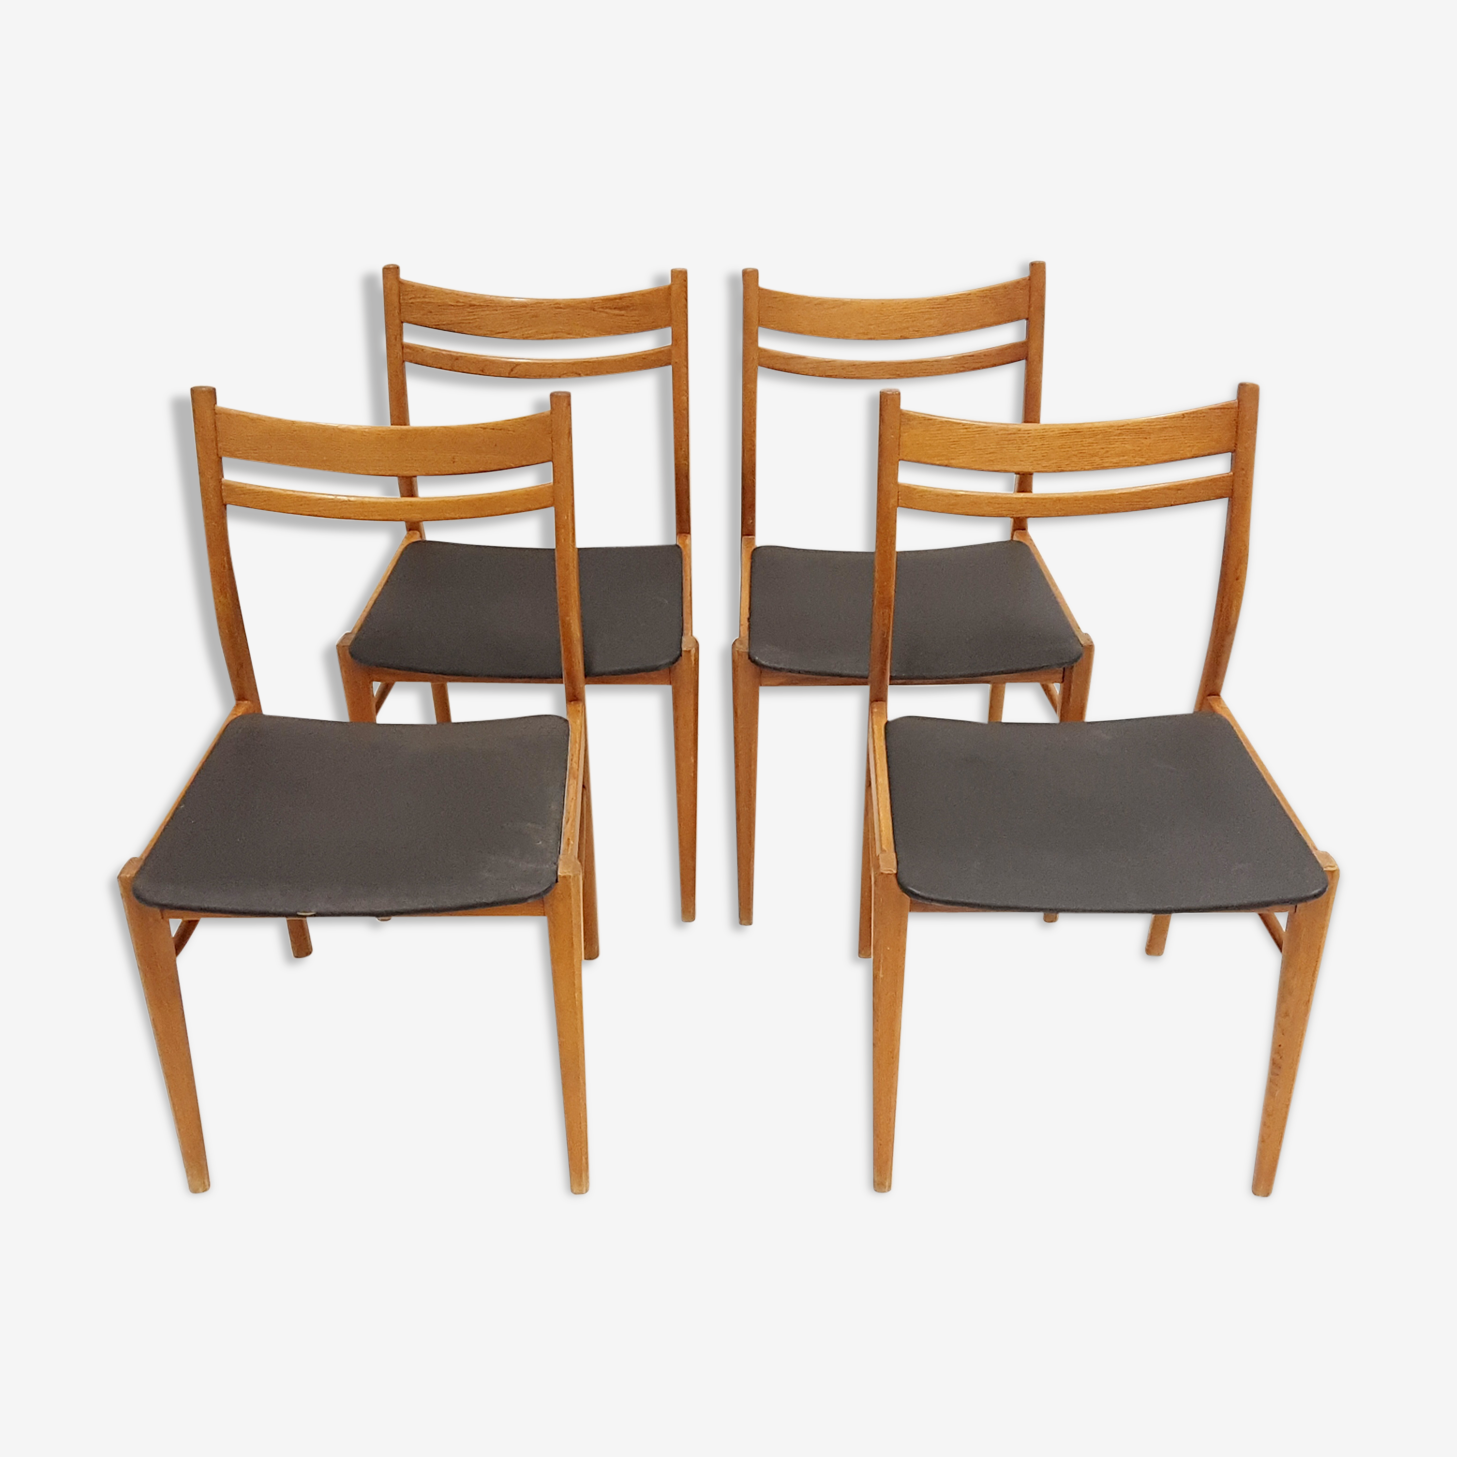 Suite de 4 chaises scandinaves 1960